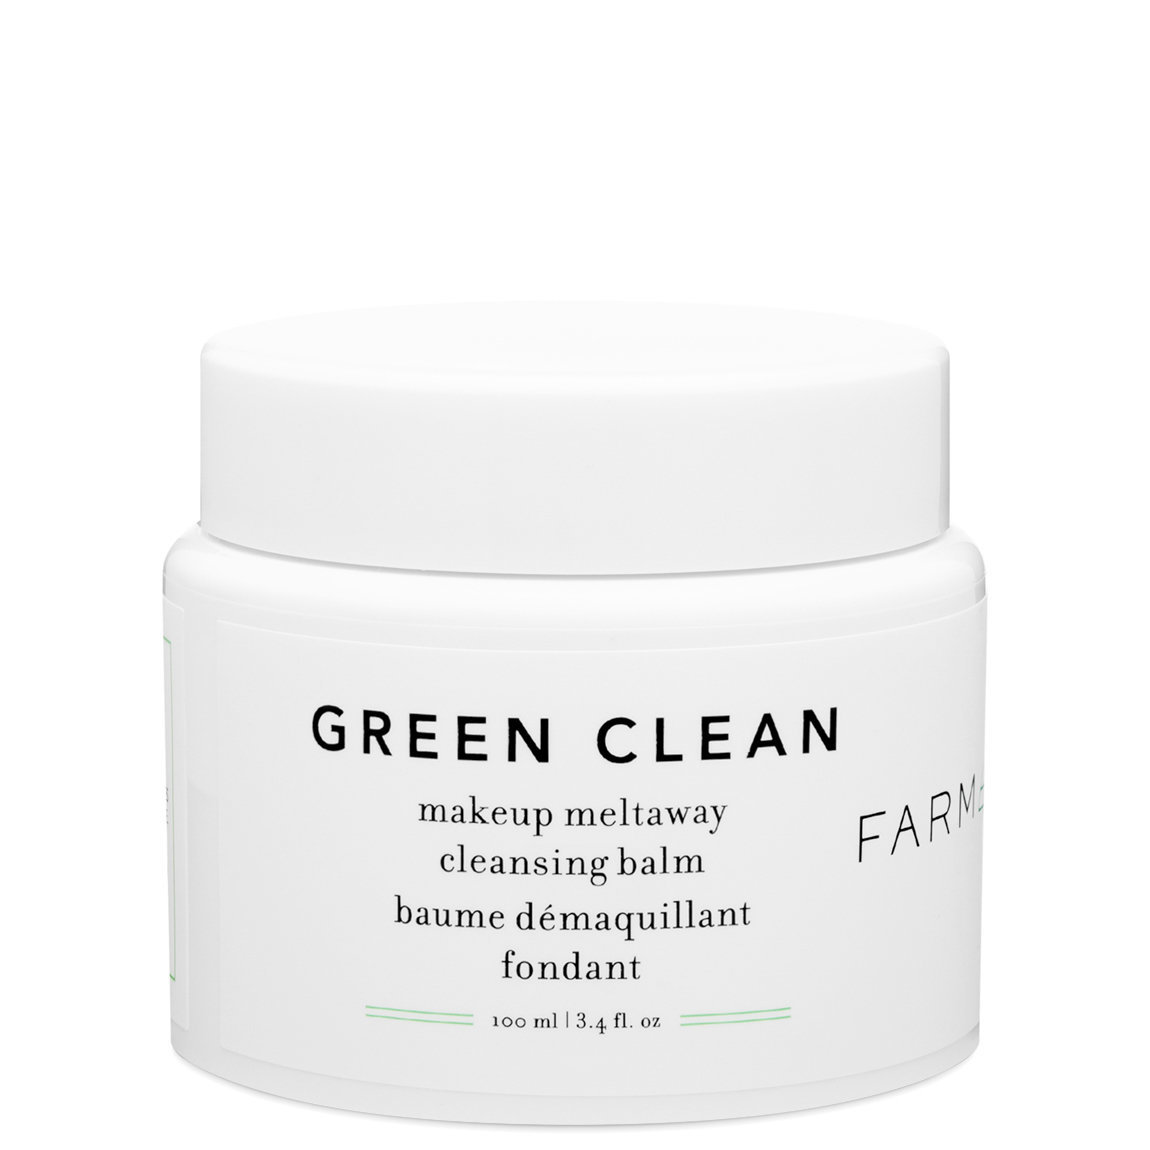 Farmacy Green Clean Makeup Meltaway Cleansing Balm 3.4 oz alternative view 1 - product swatch.